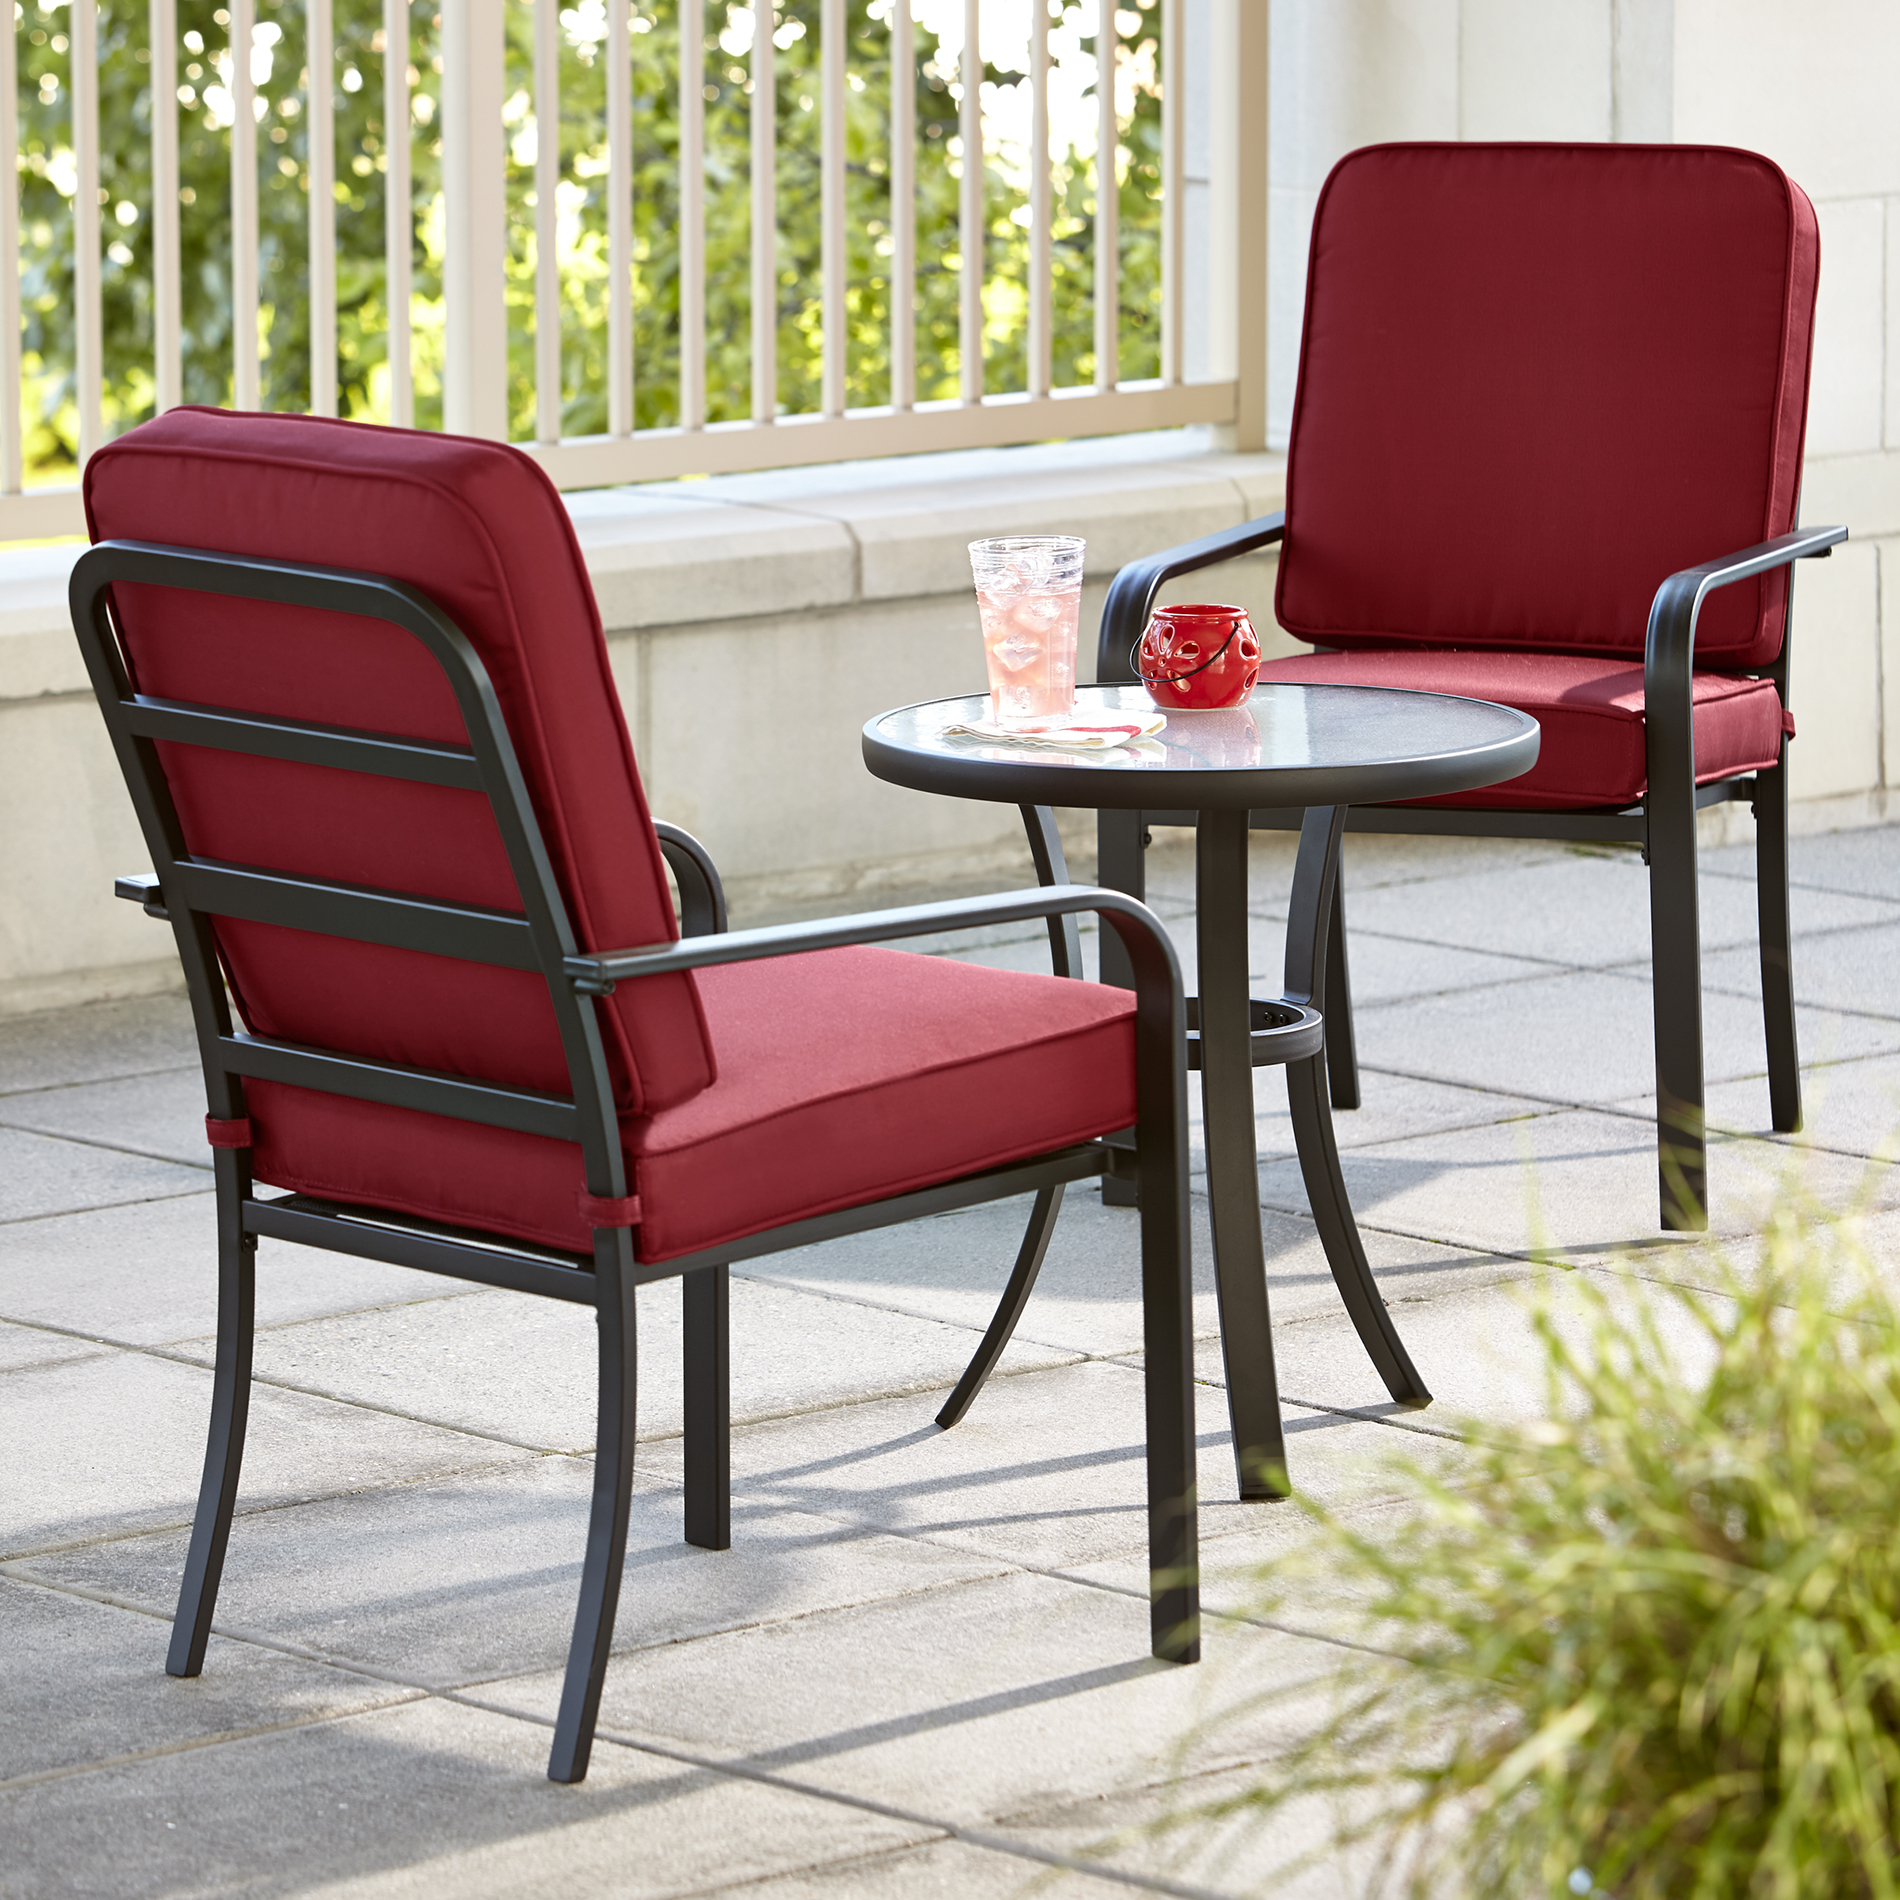 outdoor chairs kmart black arm chair 3 piece bistro patio furniture